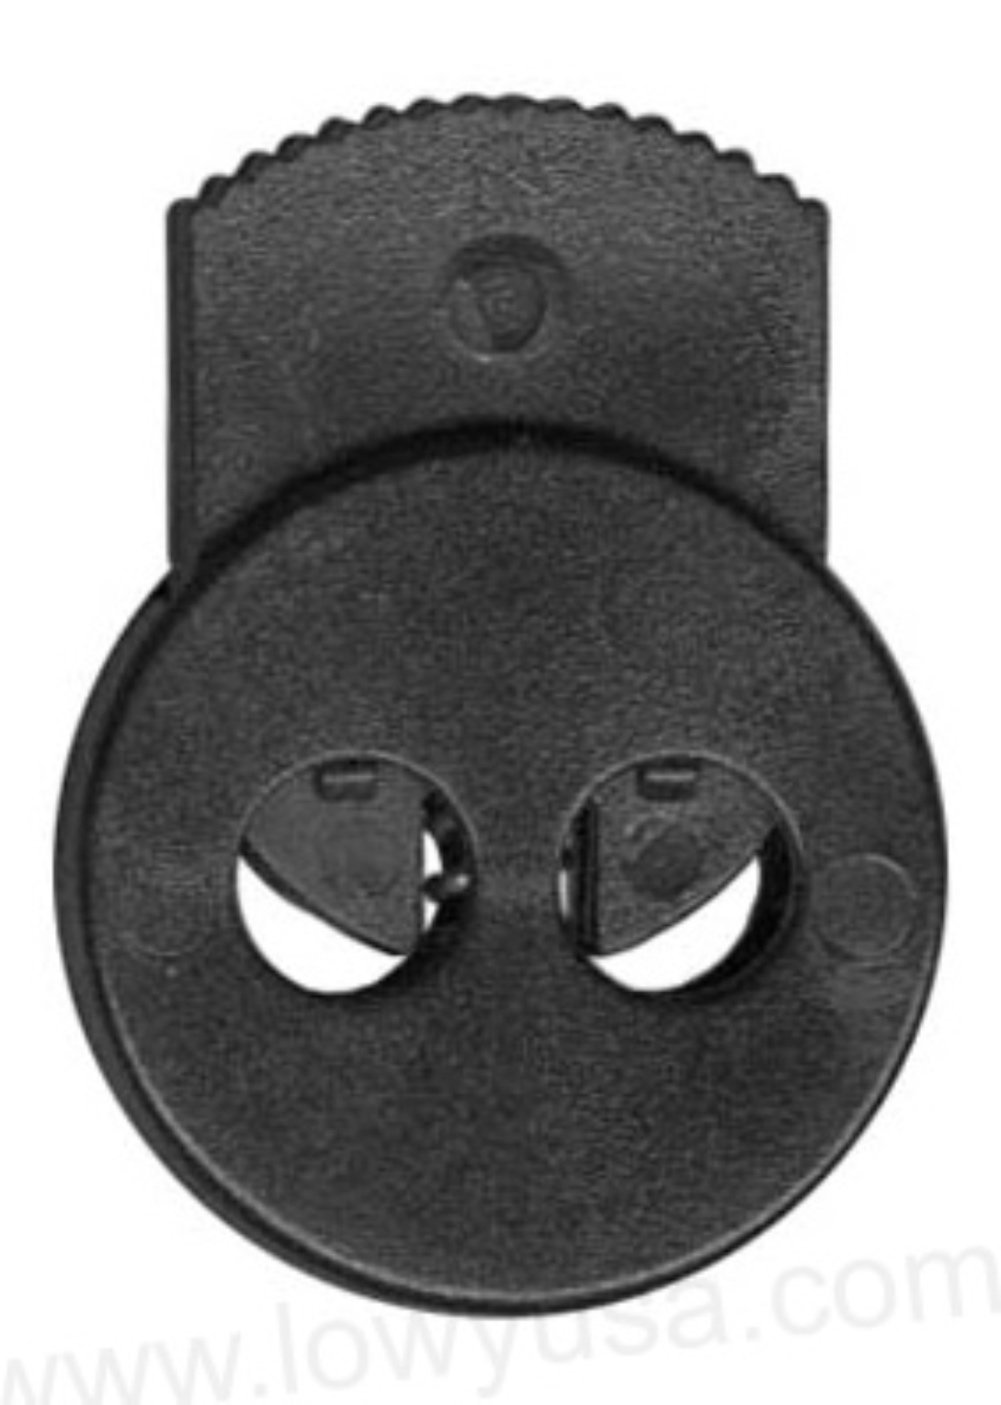 FMS Circle Dual Hold Lock - Dual Hole Cord Lock, Spring Stop, Toggle (500 Pack)(Black) by FMS (Image #1)